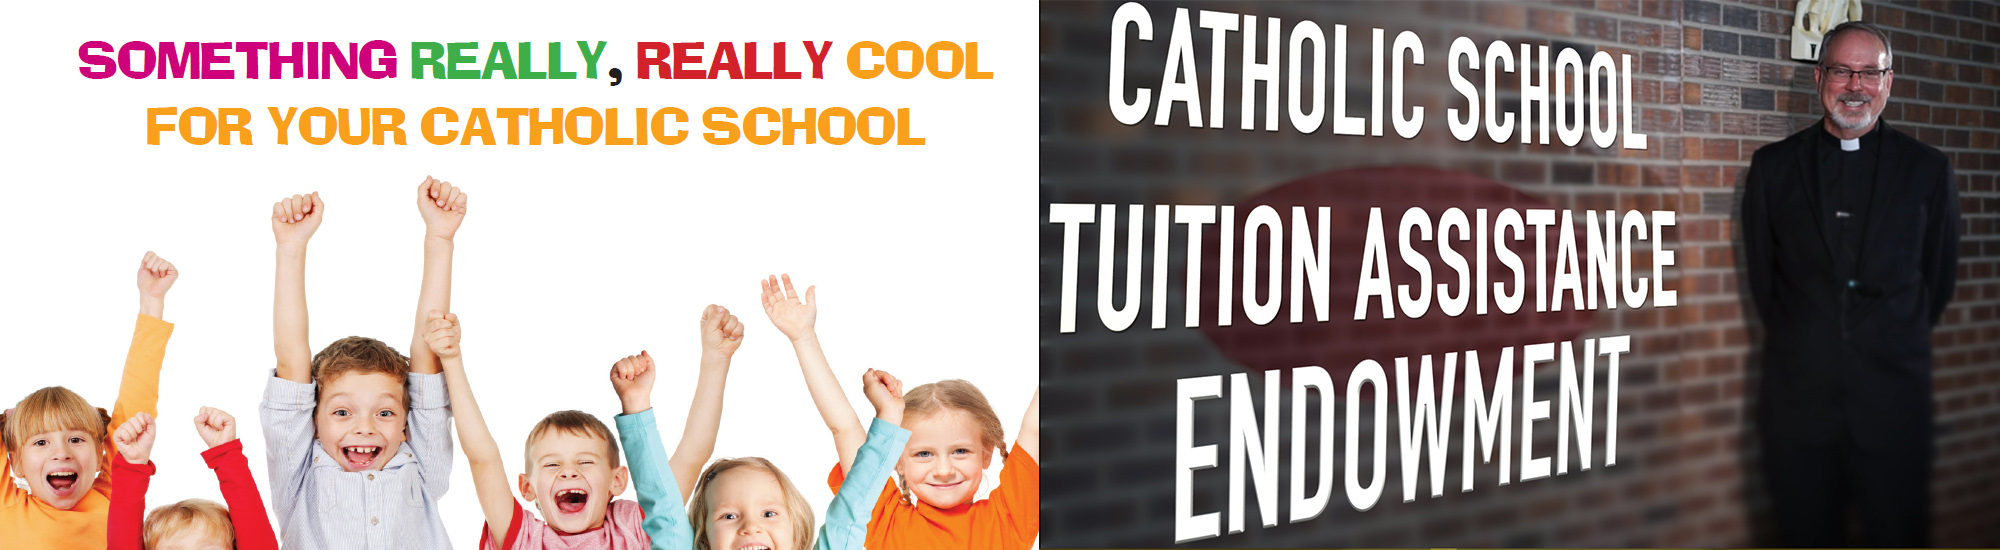 Catholic Schools Tuition Assistance Endowment